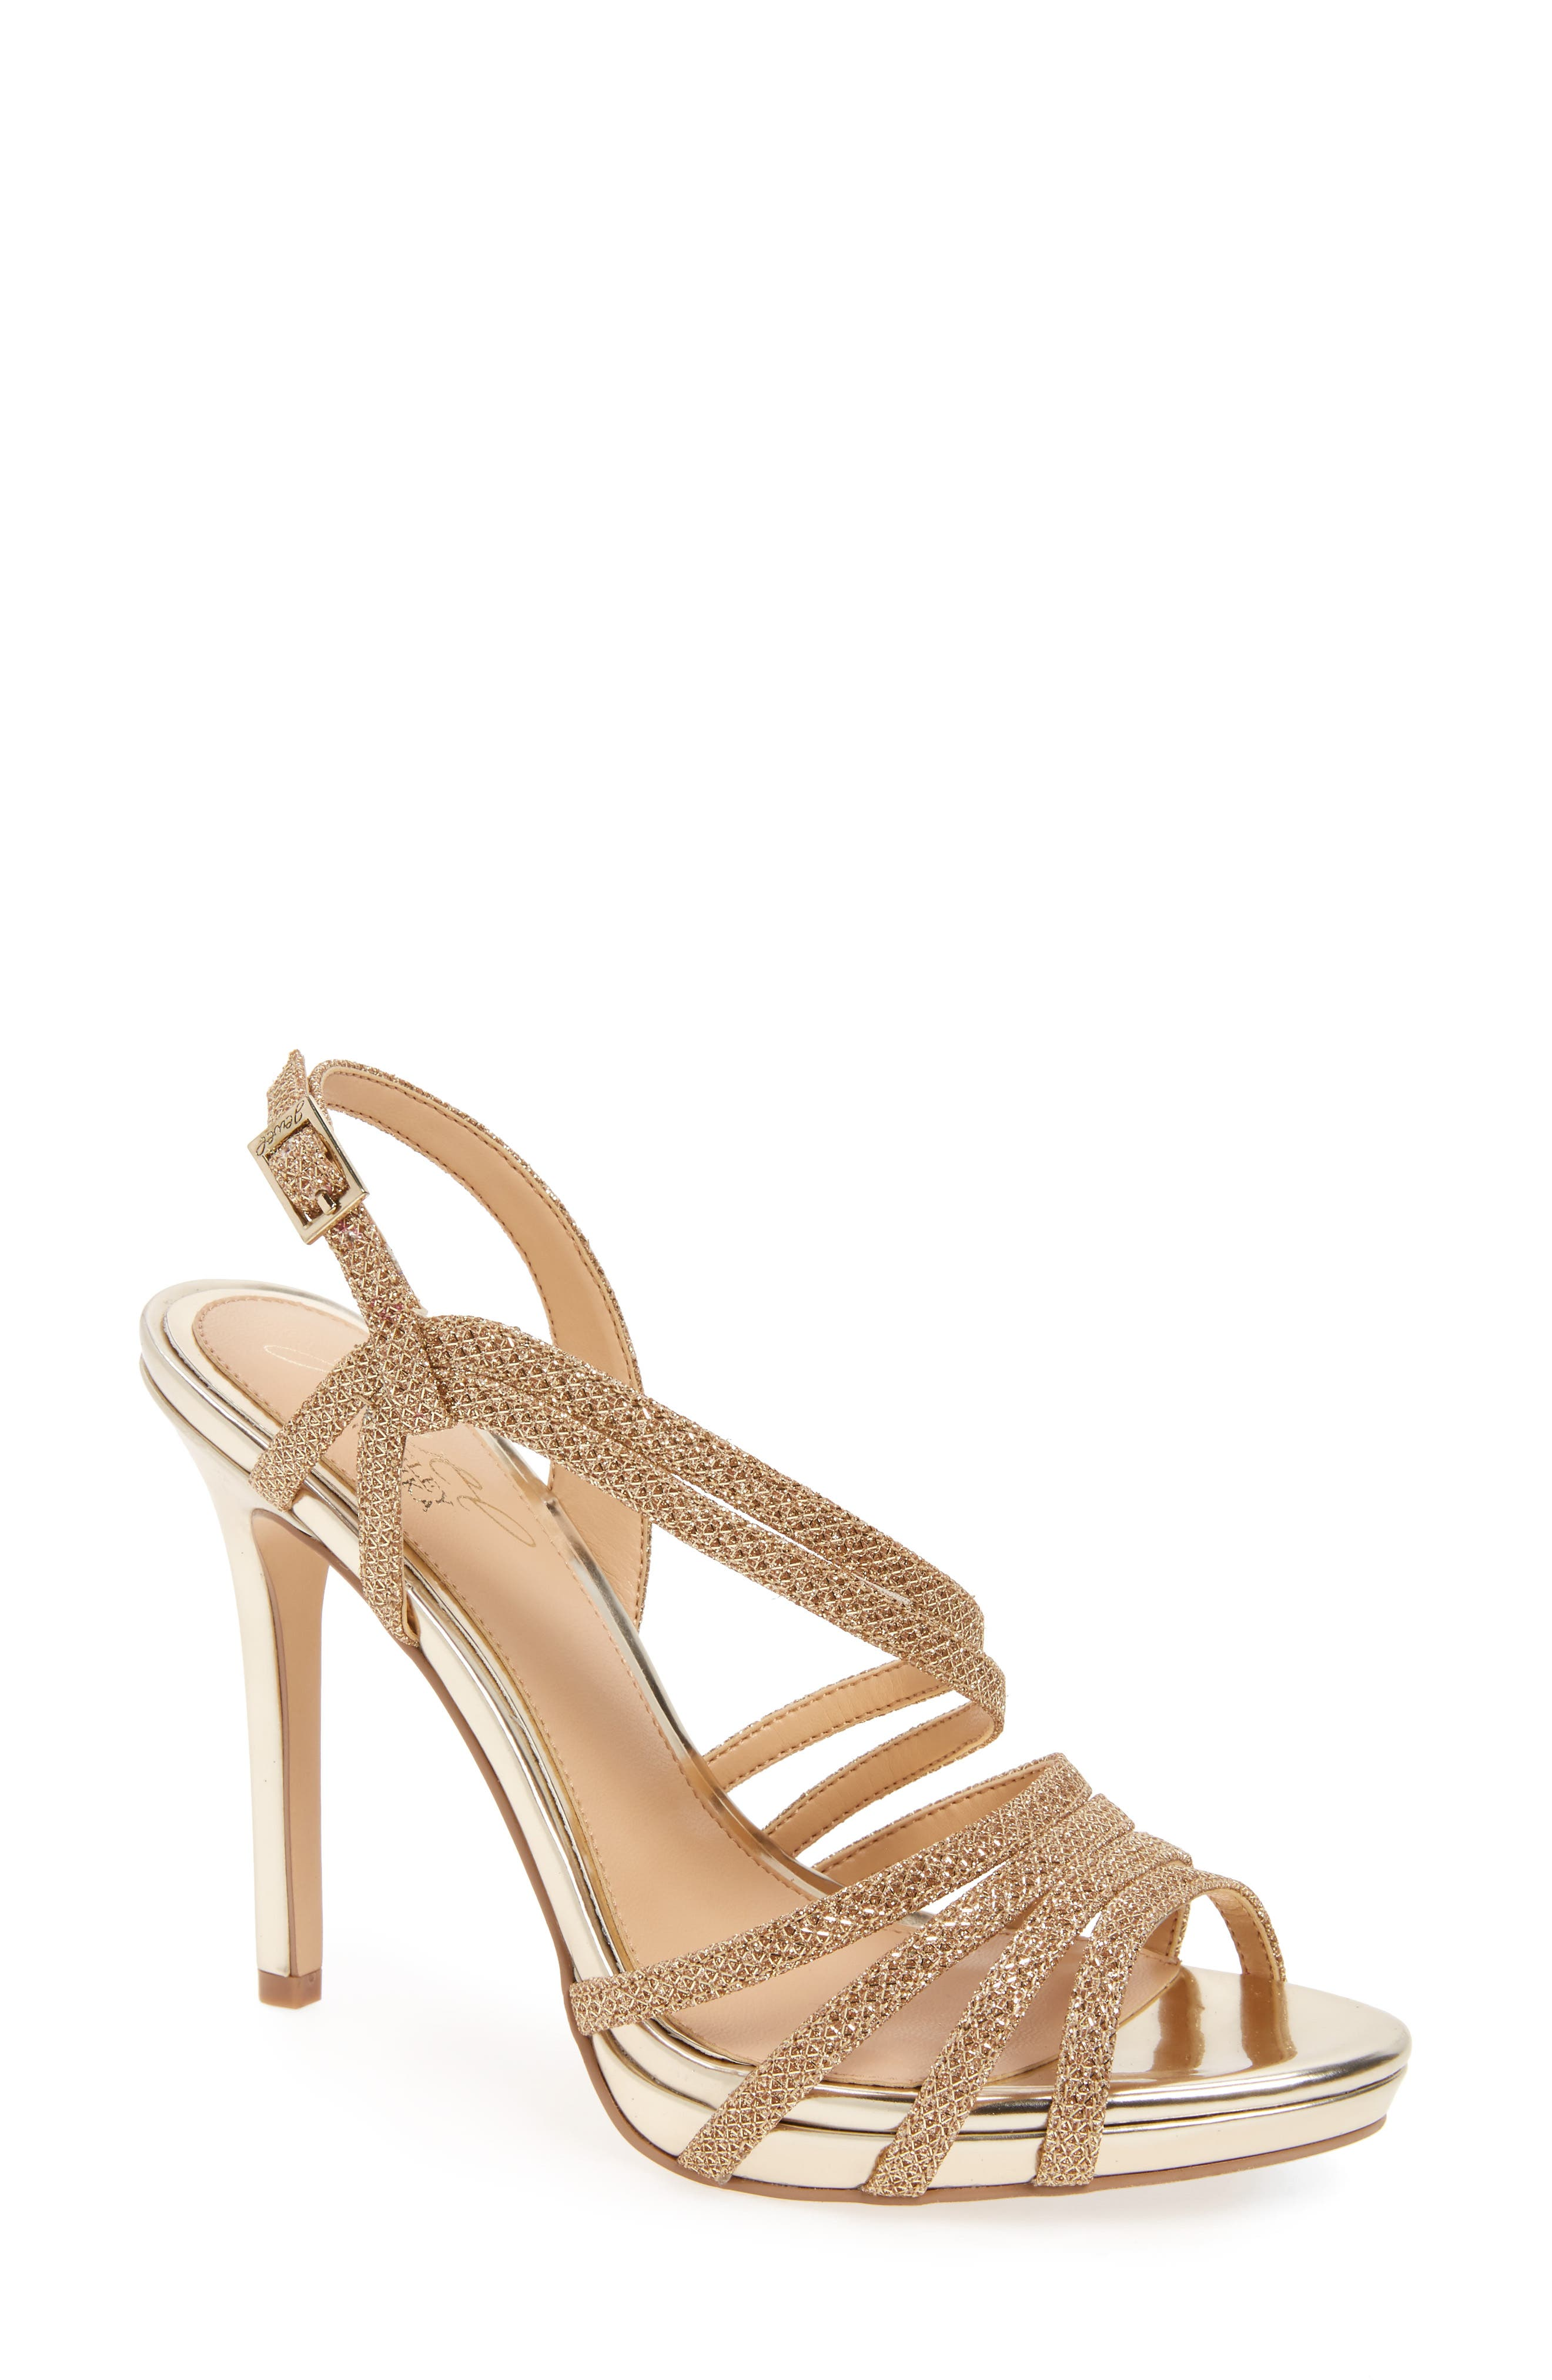 Humble Strappy Sandal,                         Main,                         color, Gold Glitter Fabric